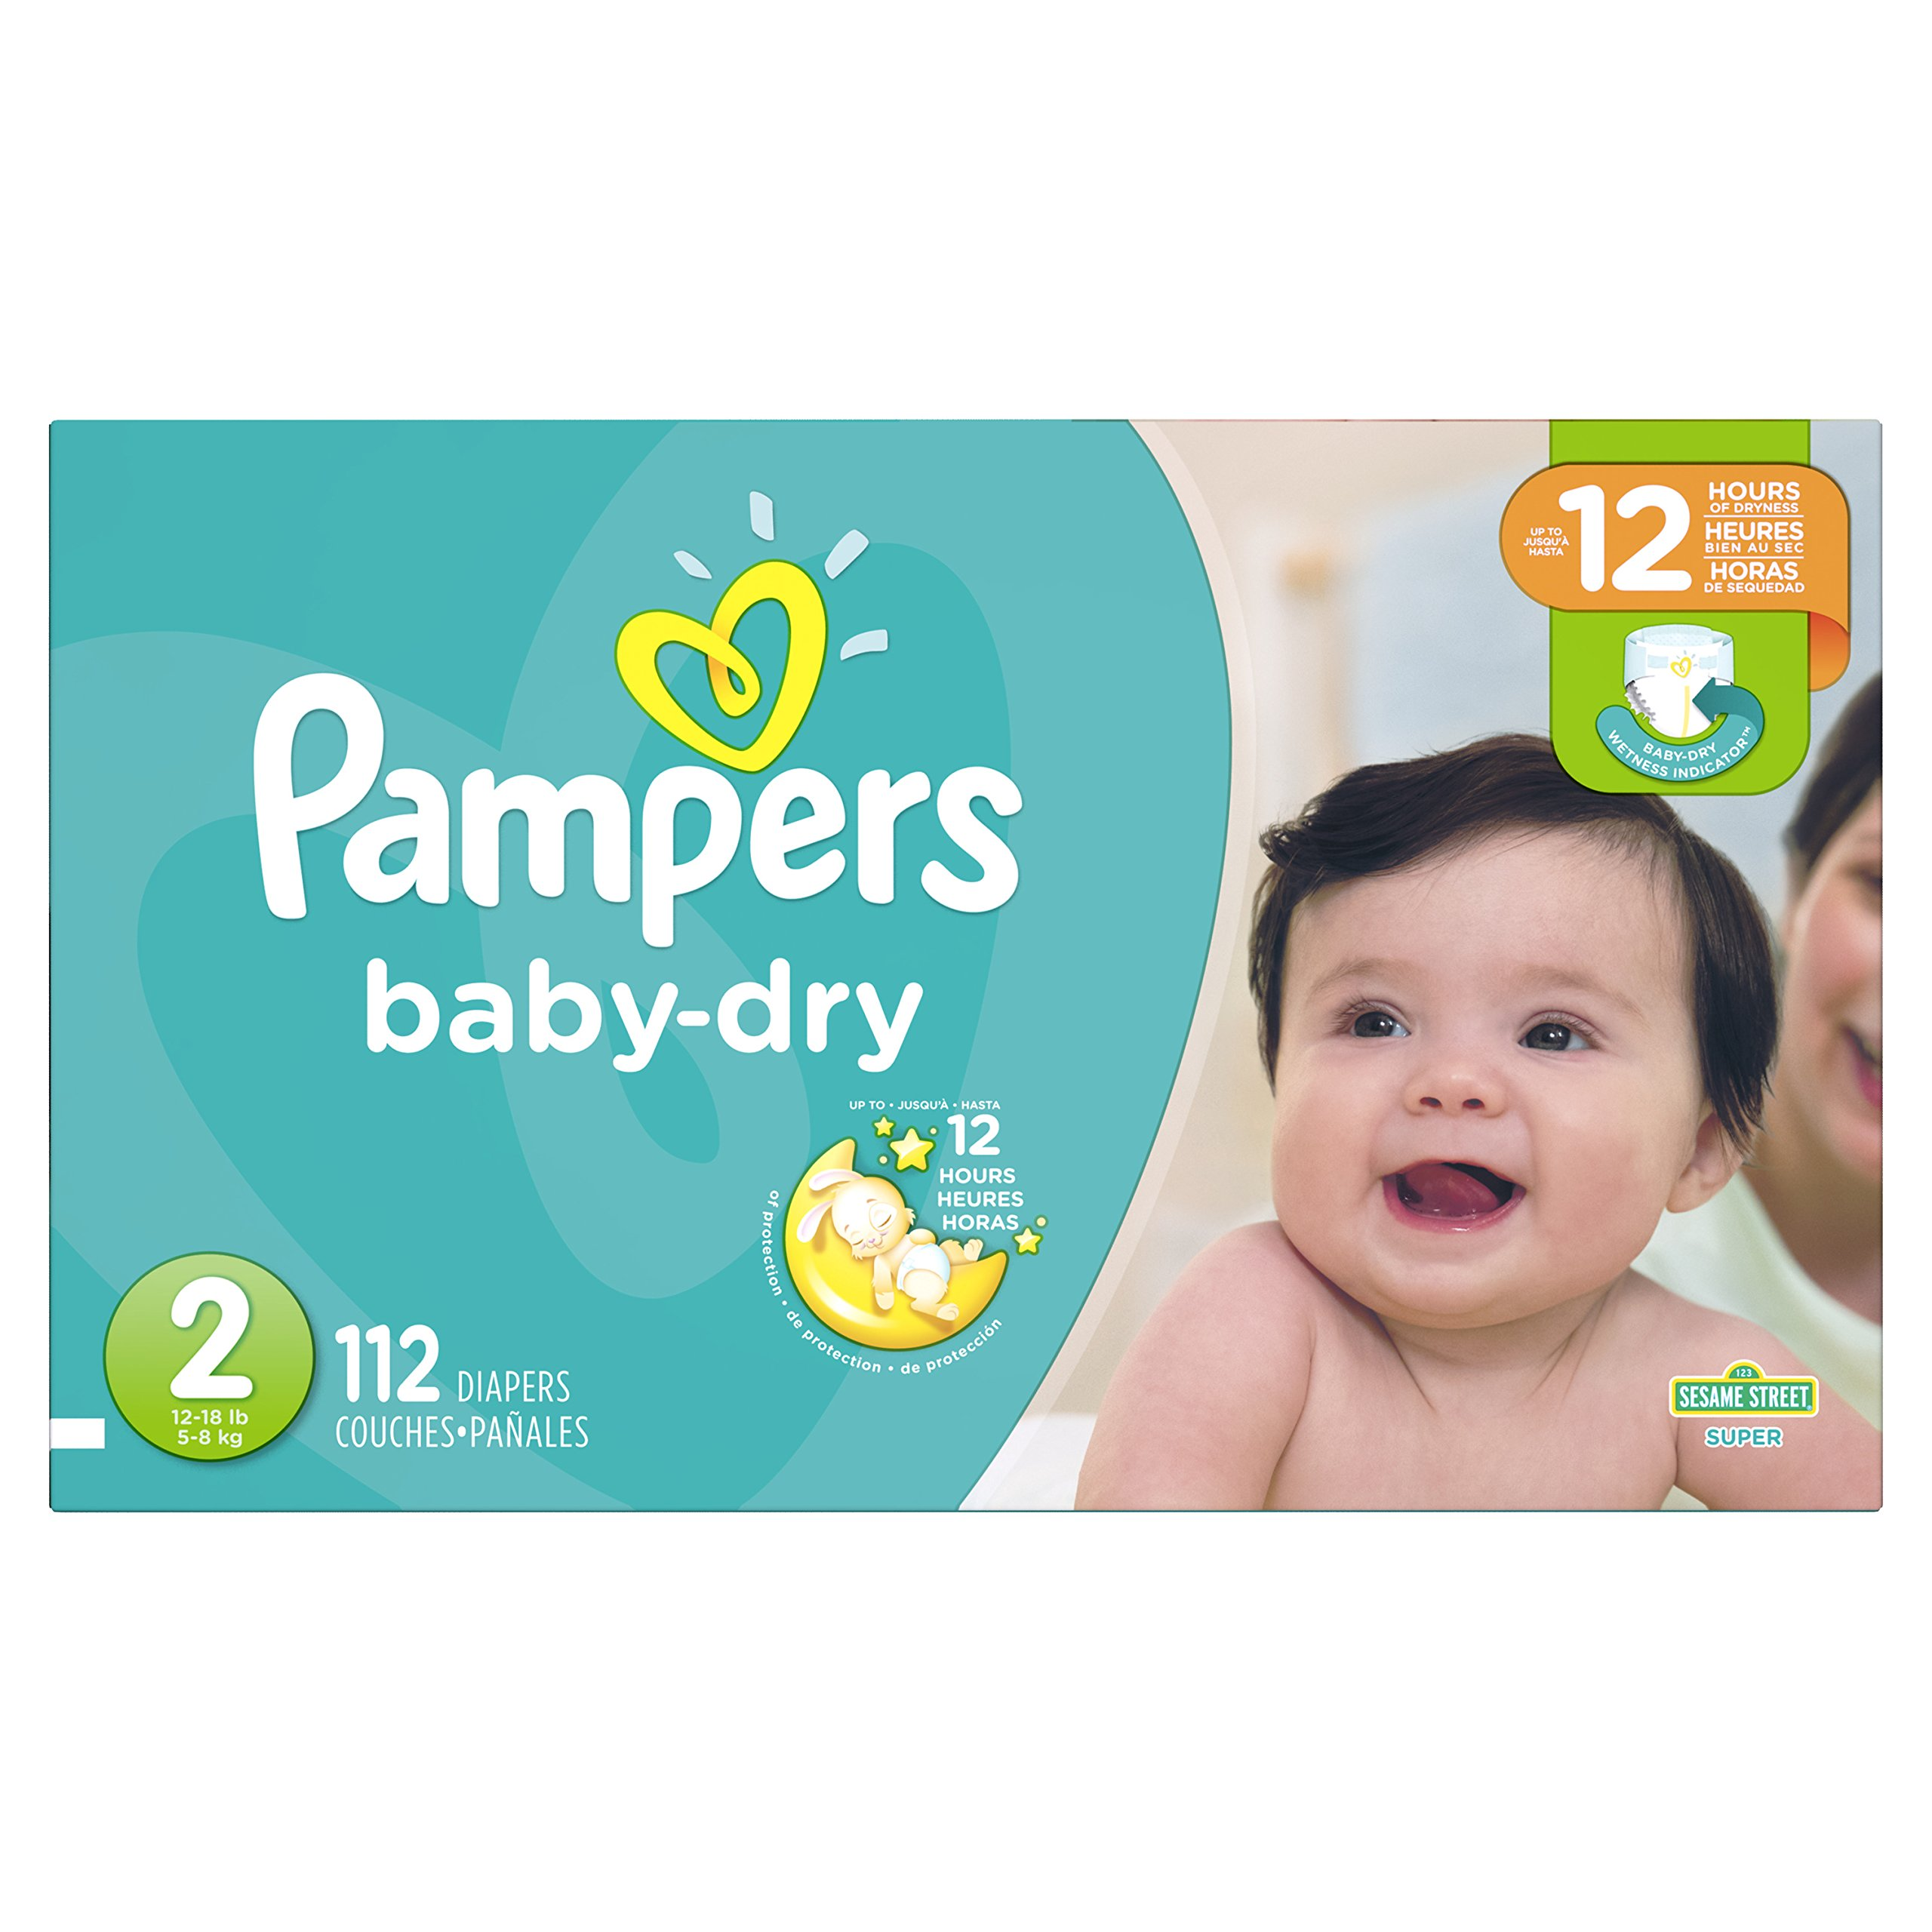 Diapers Size 2, 112 Count - Pampers Baby Dry Disposable Baby Diapers, Super Pack by Pampers